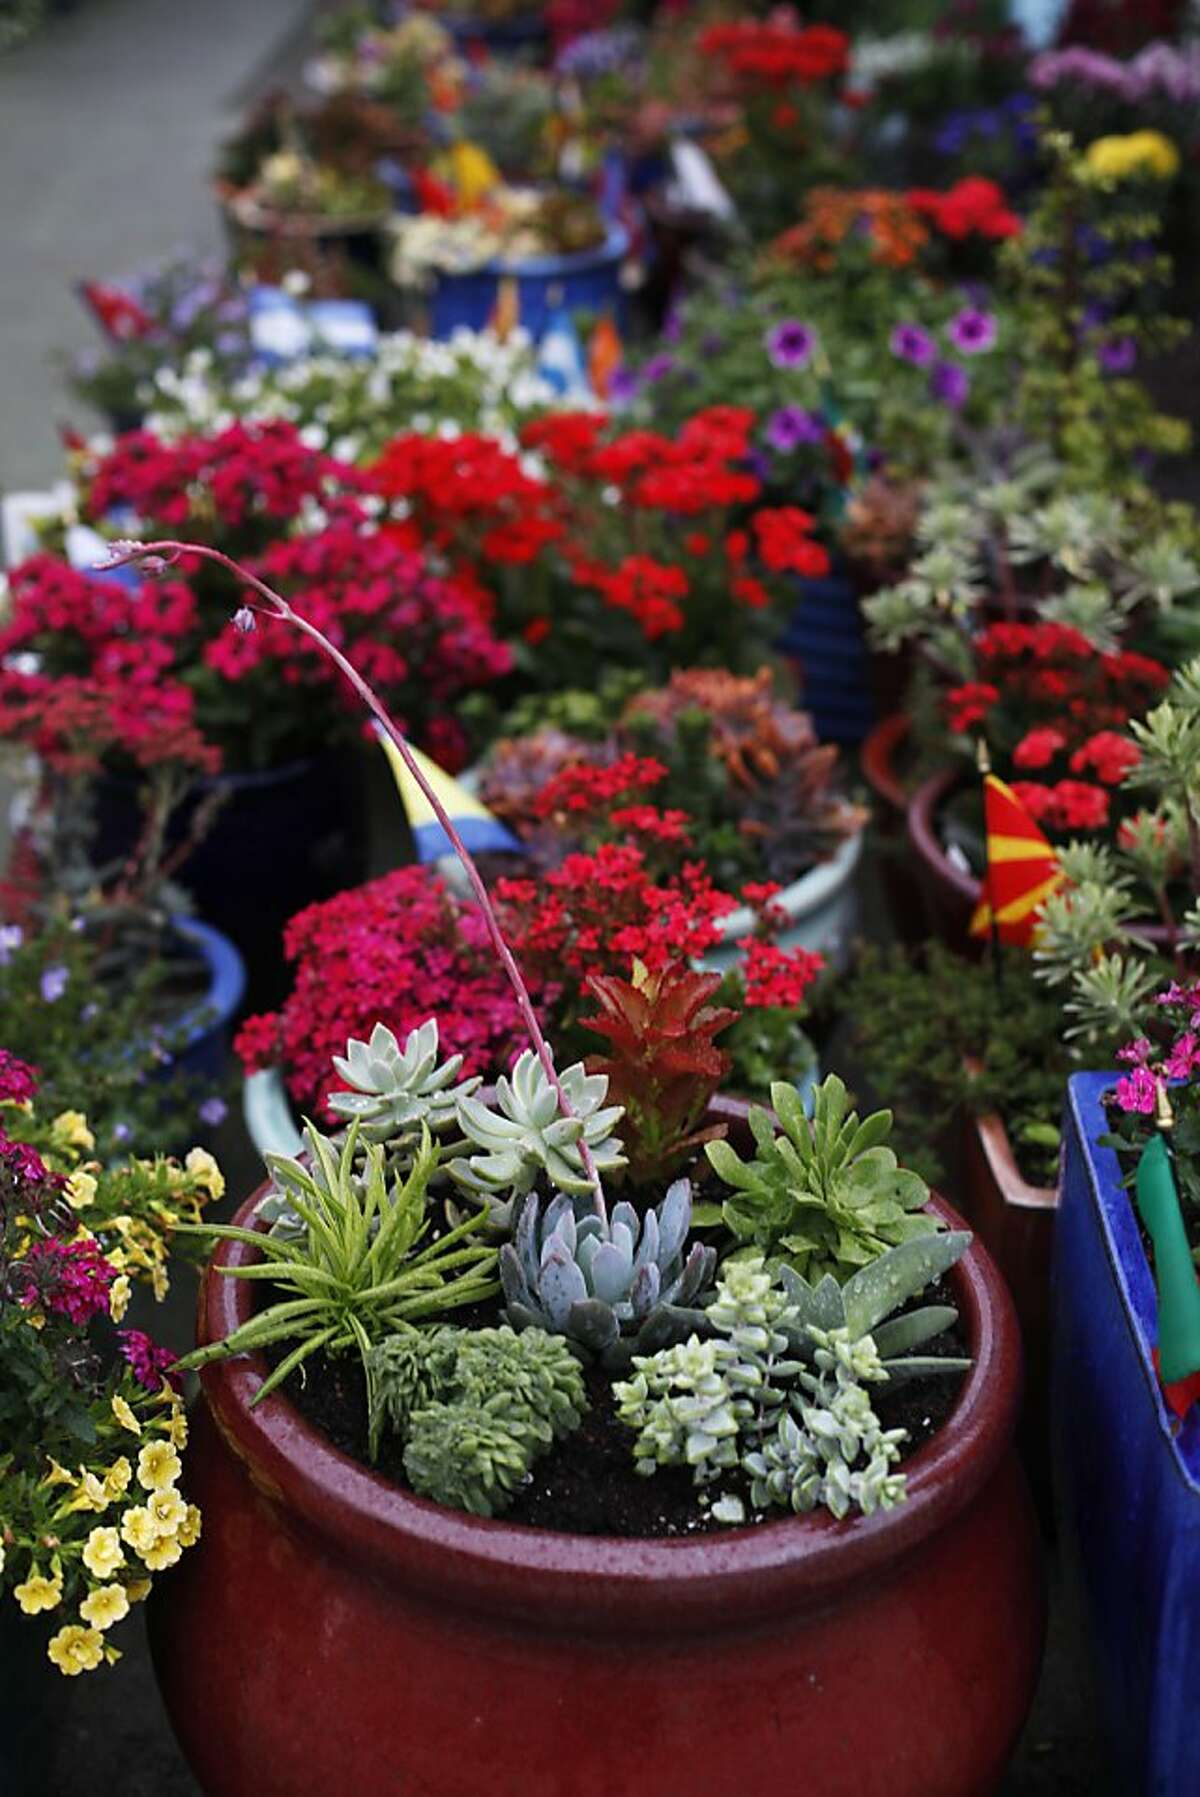 Potted plants, each containing a country's flag, are seen on Barcelona Street on November 19, 2013 in the Anza Vista neighborhood of San Francisco, Calif.